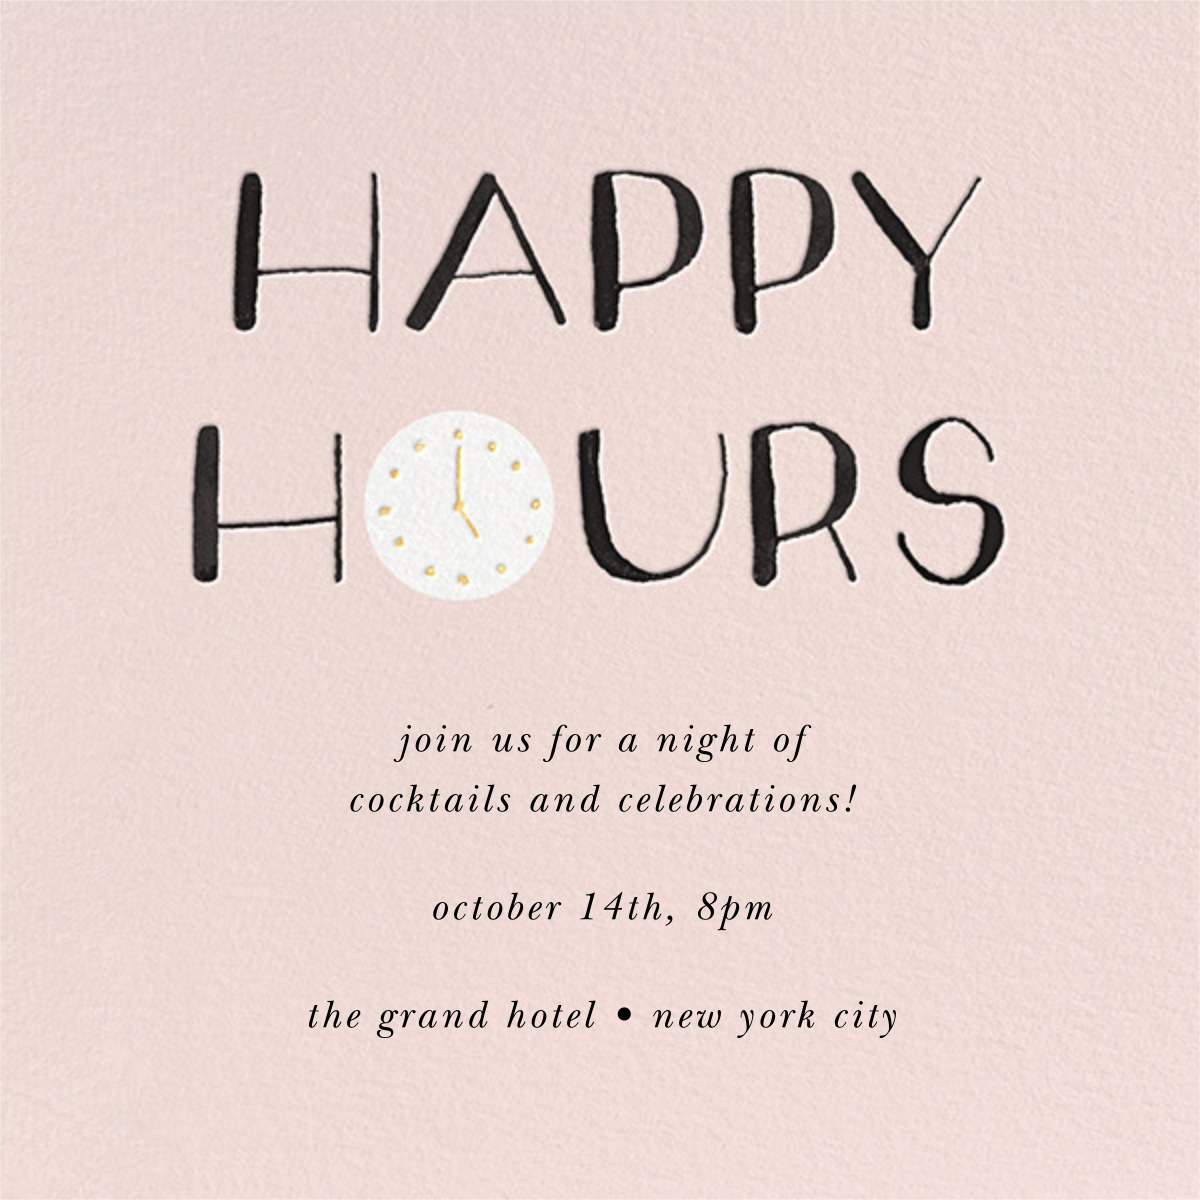 The Happiest Hour - kate spade new york - Cocktail party